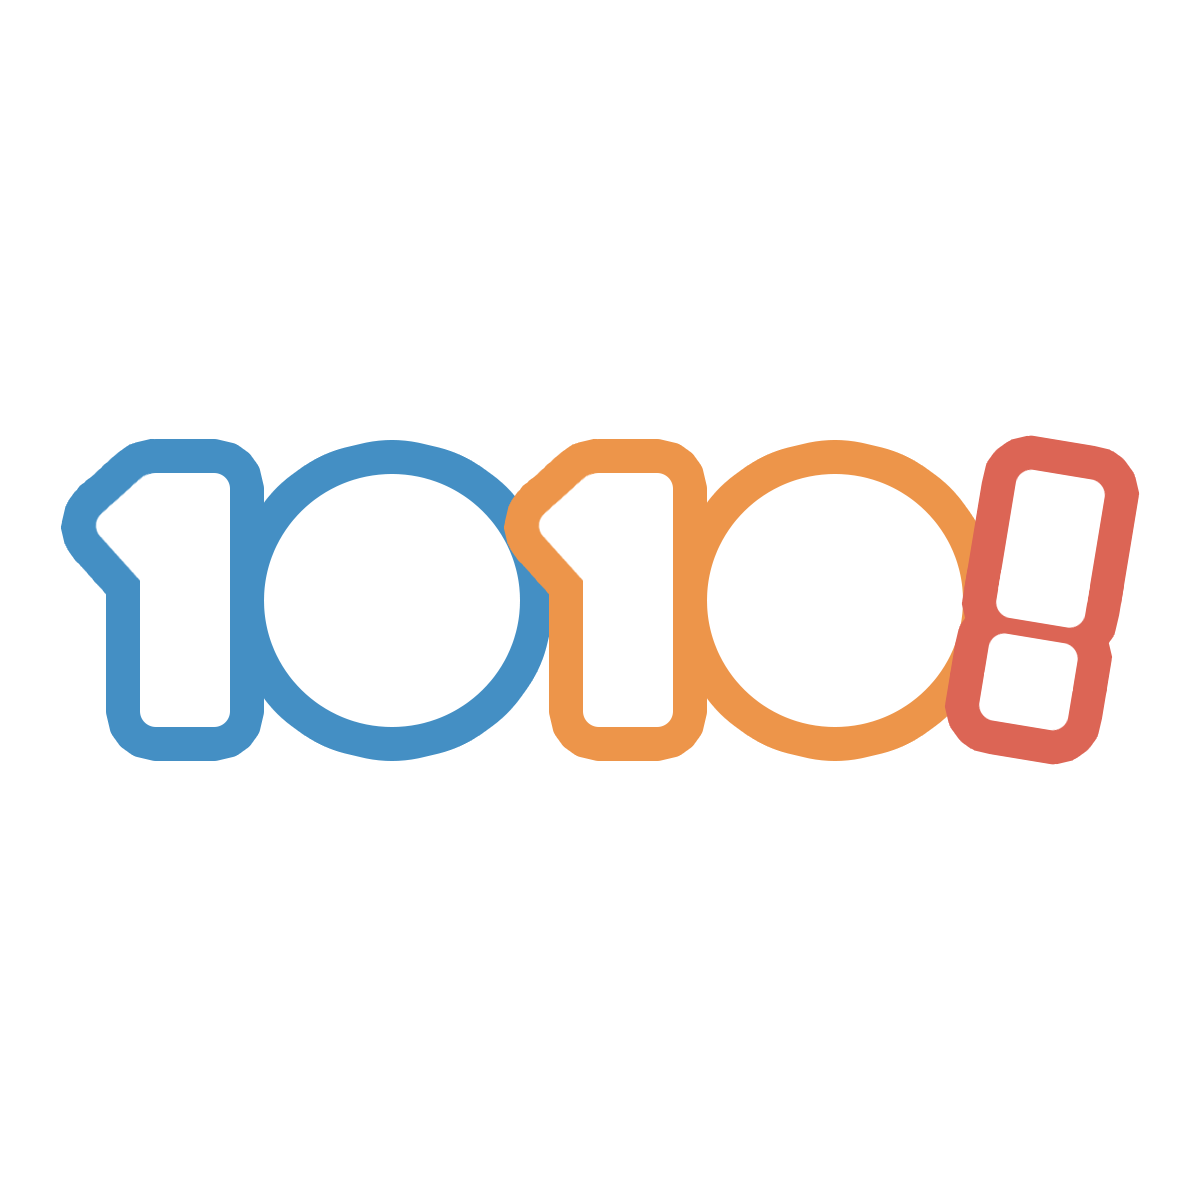 1010 Game